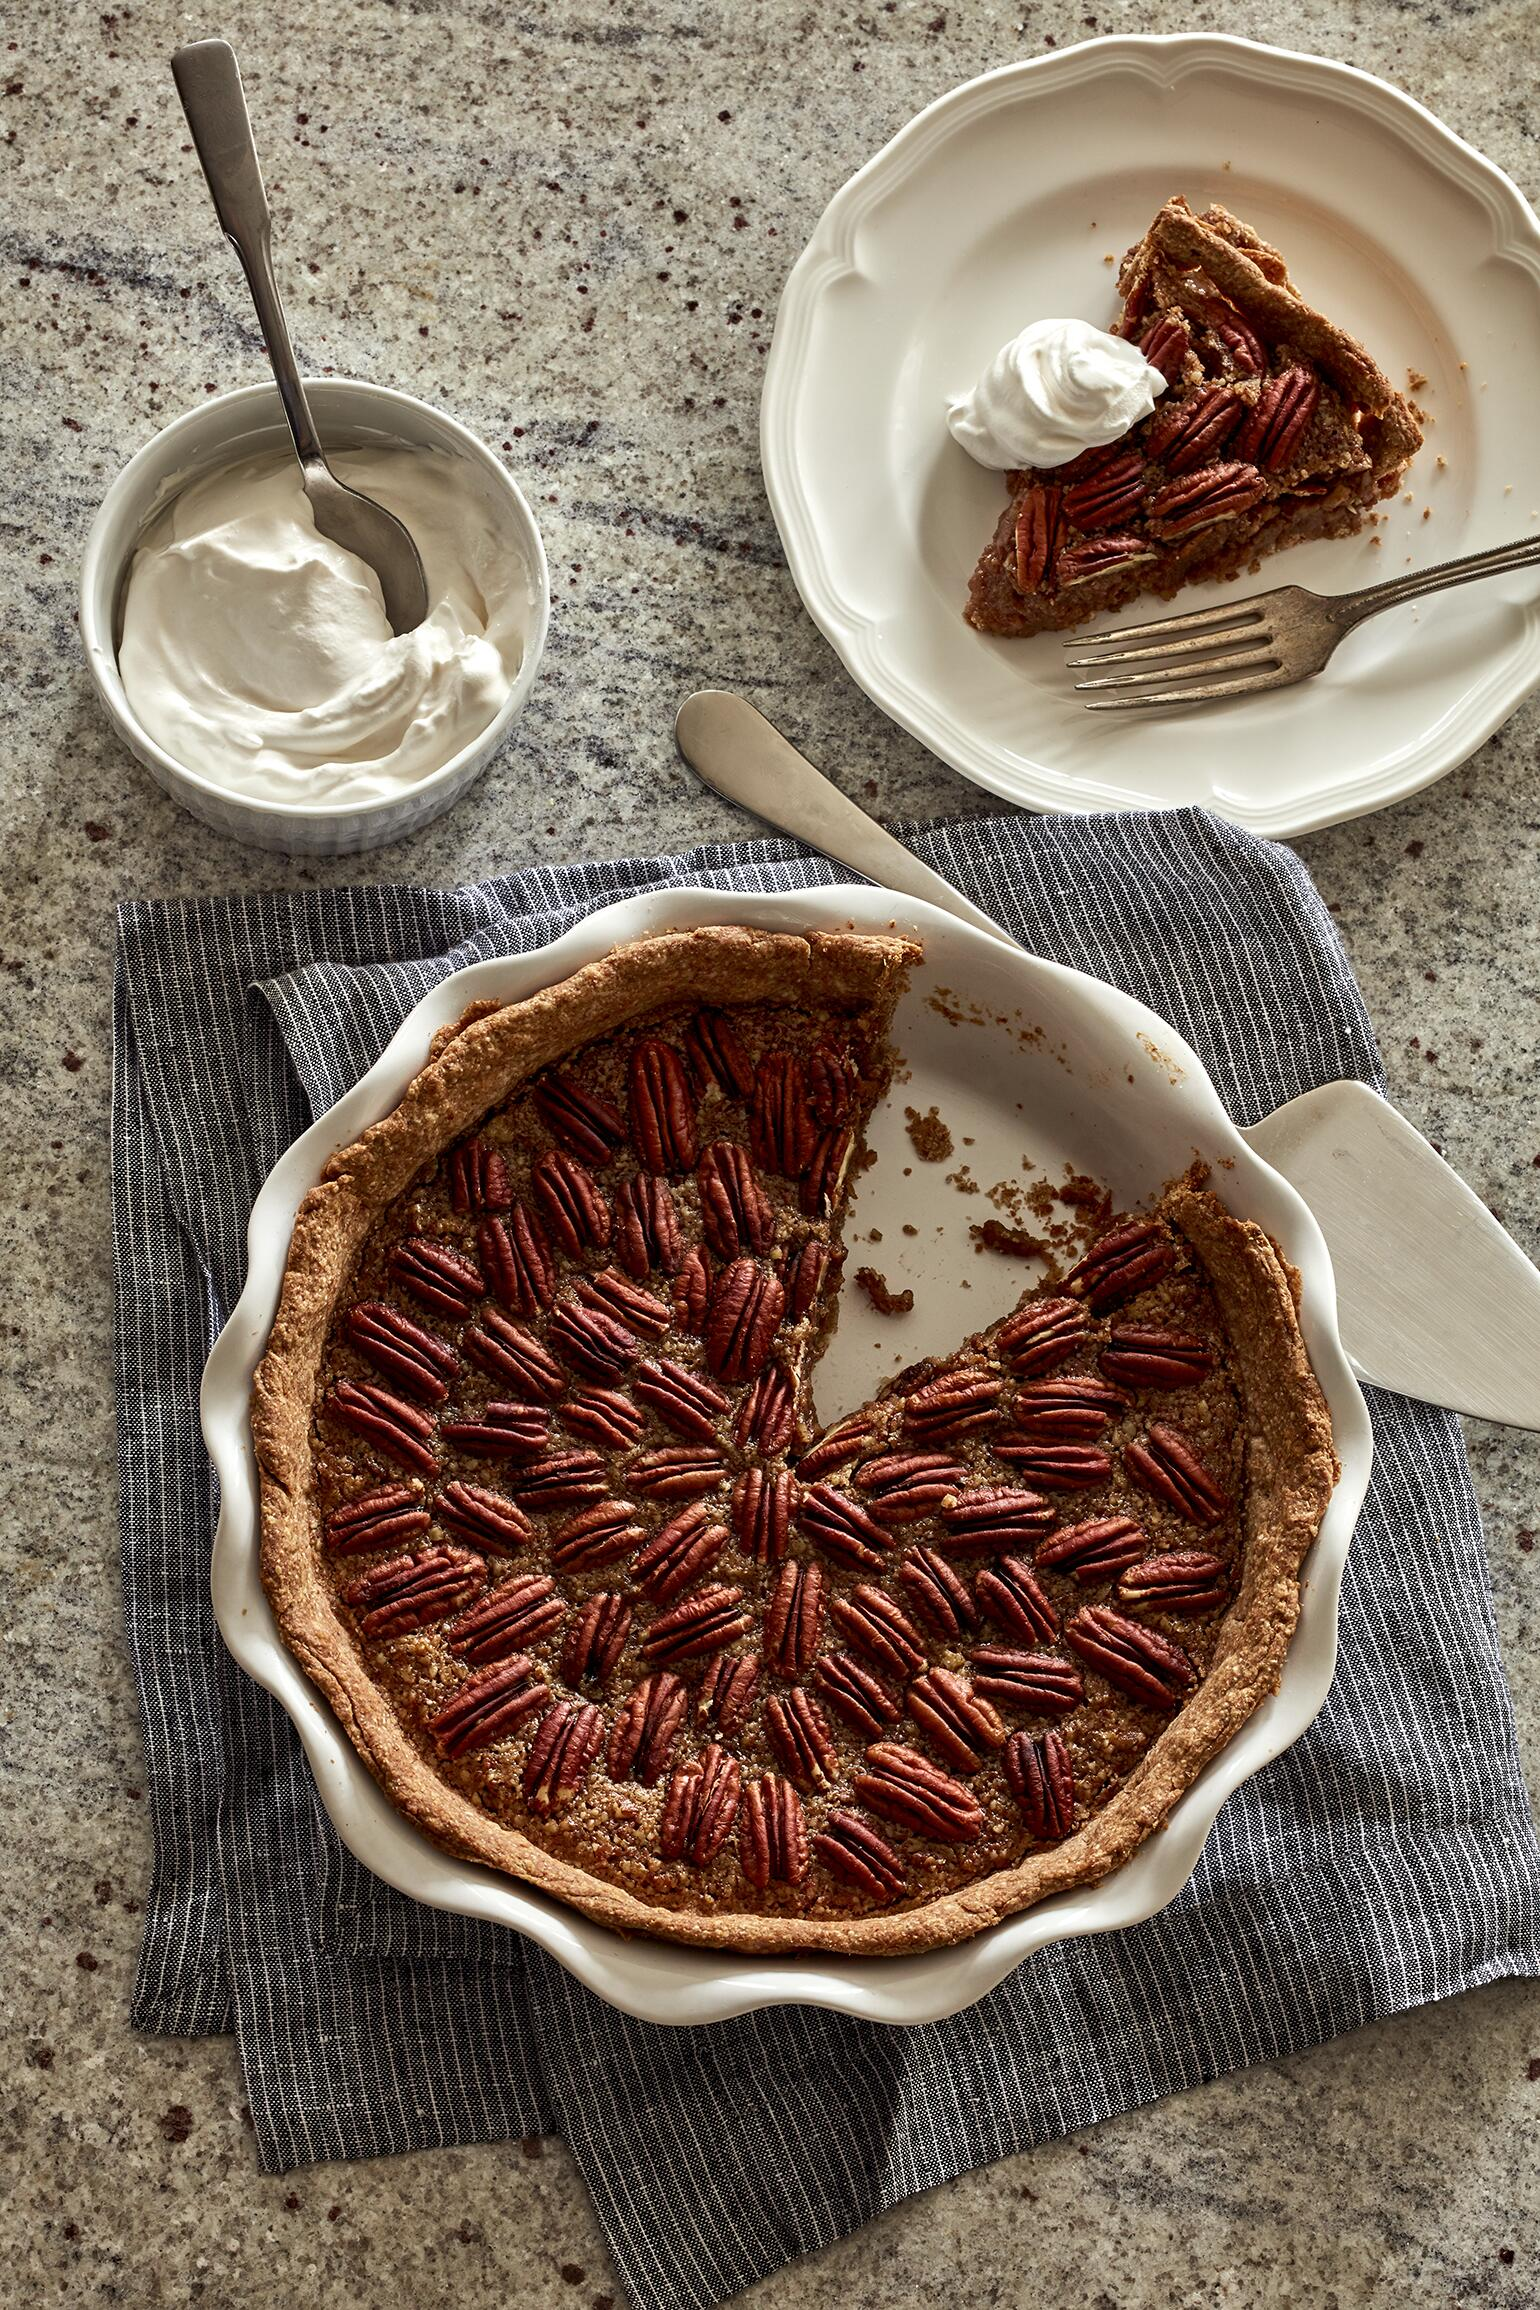 PecanPie2_VARNEY_MCQUIRTER_PECAN PIE_0713 FINAL Credit Jason Varney_1540.jpg